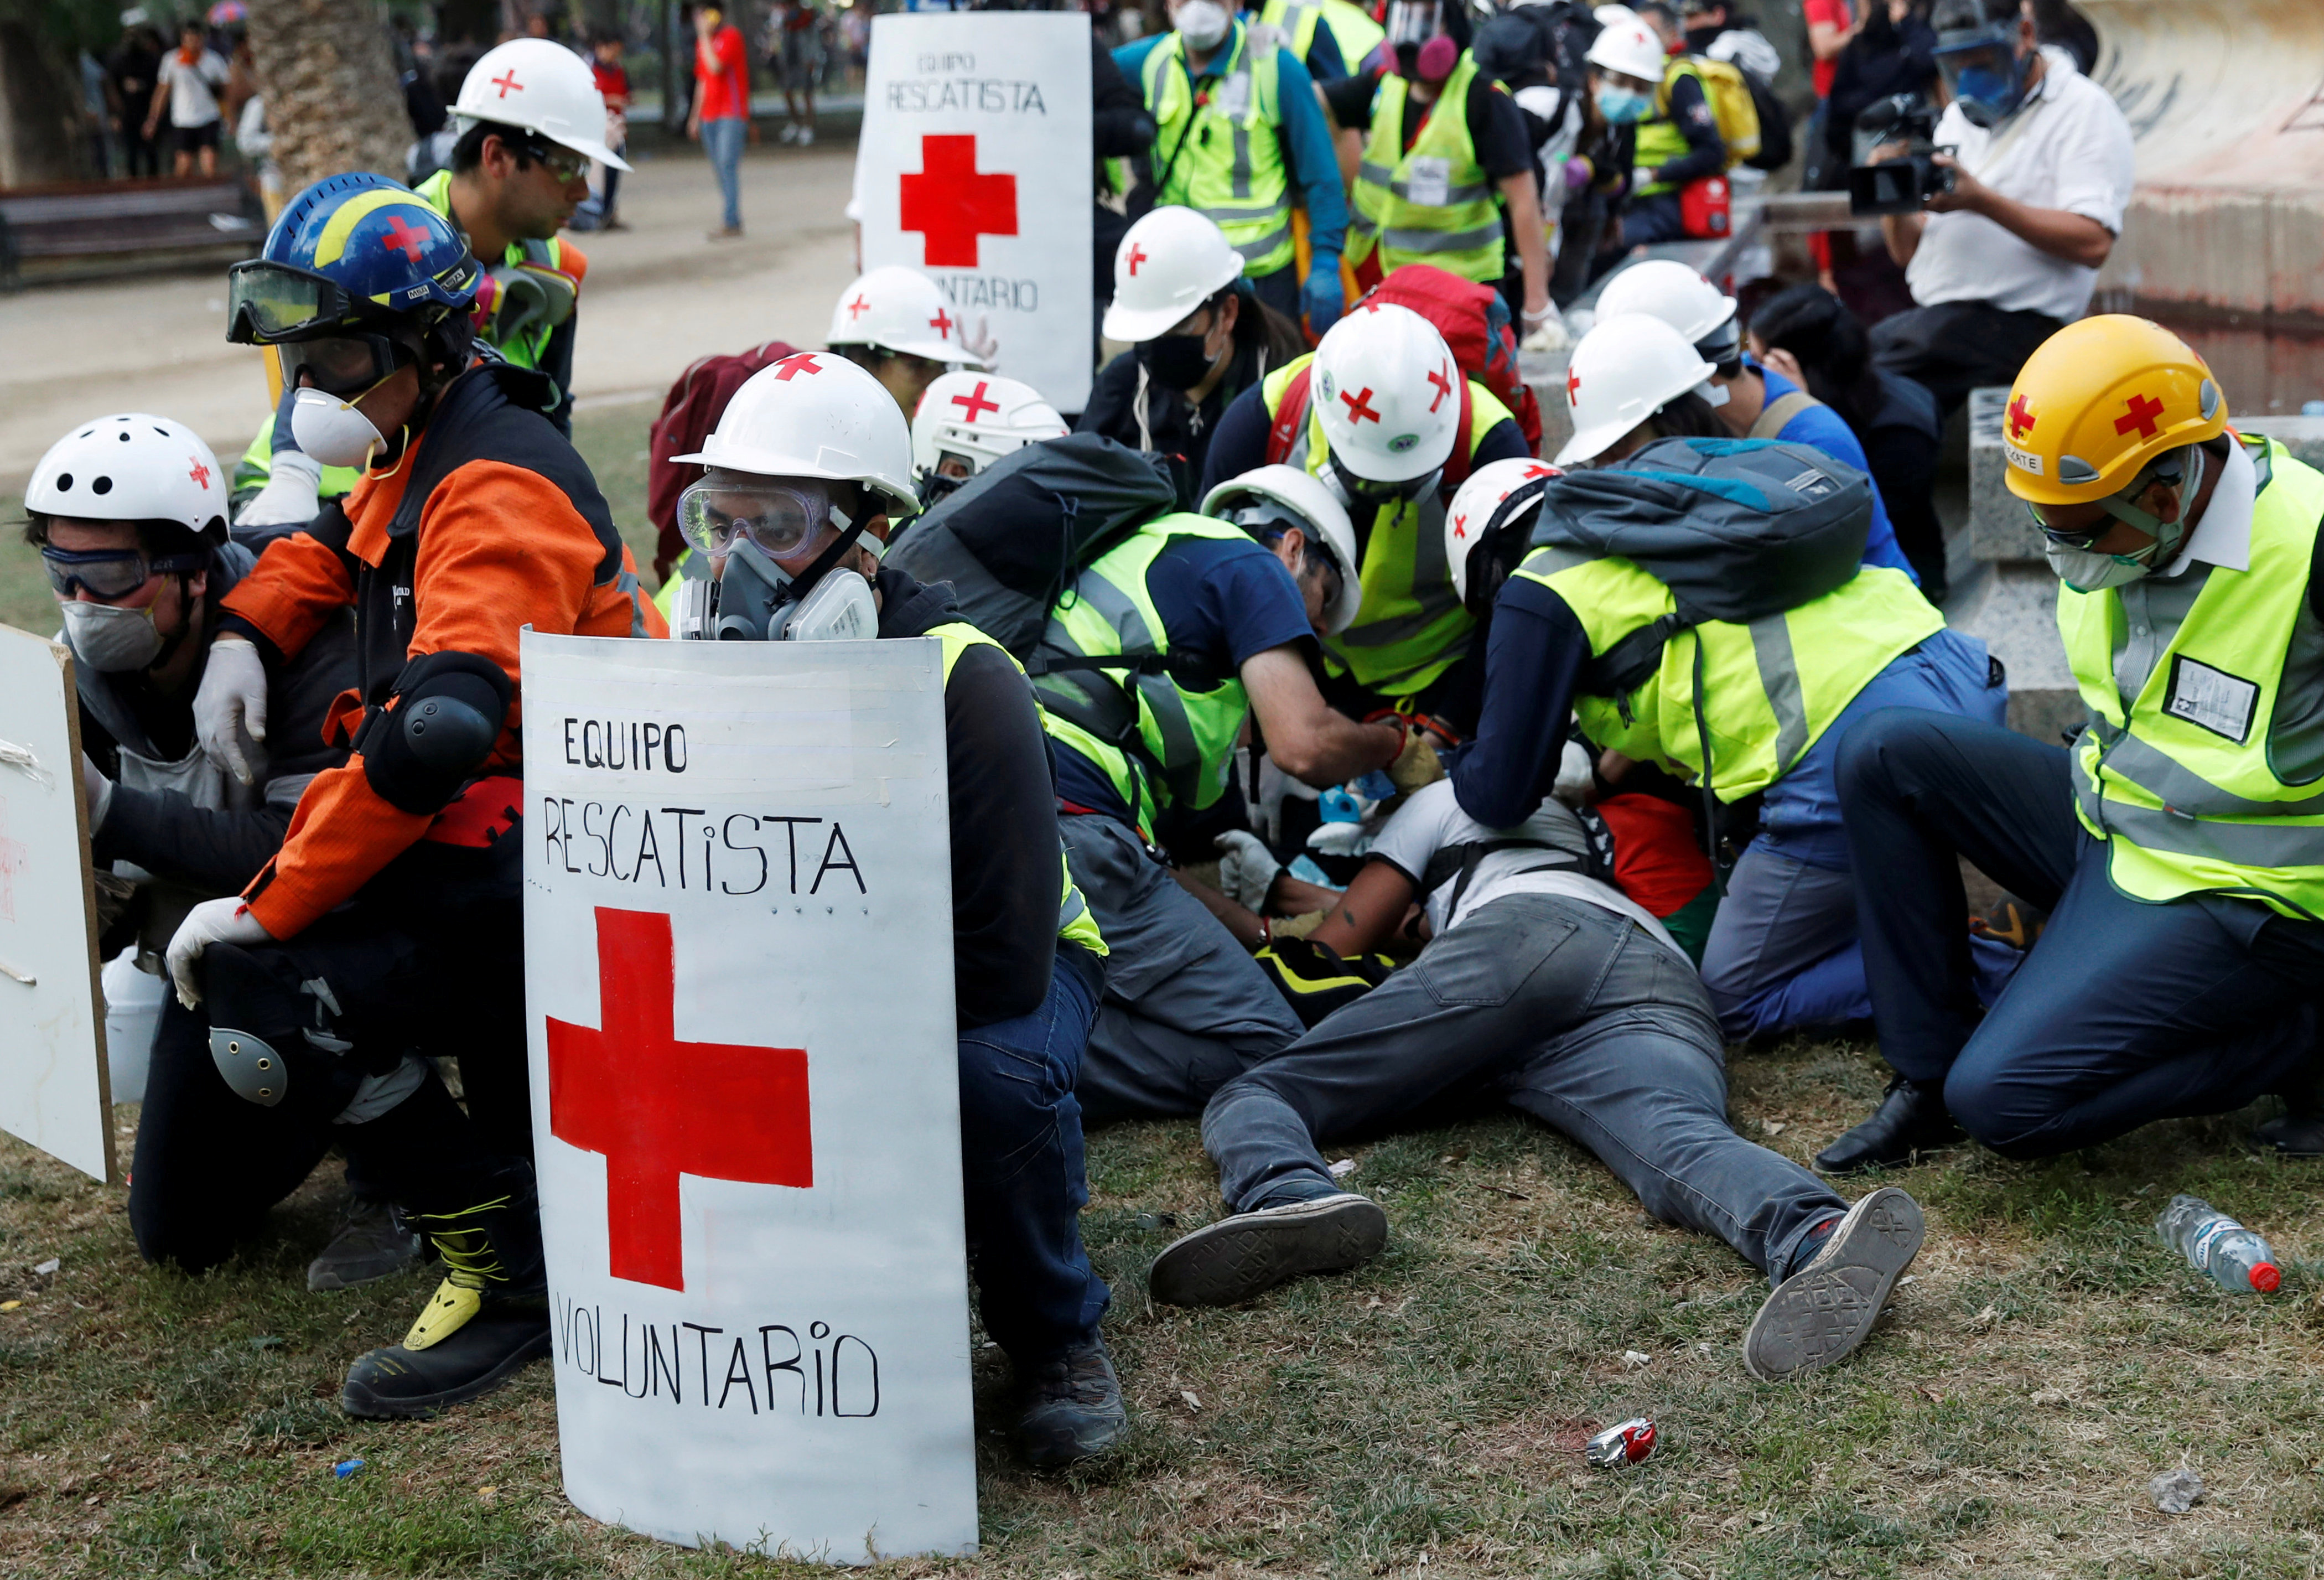 An injured demonstrator is attended to by medical personnel during a protest against Chile's government in Santiago, Chile October 30, 2019. (Jorge Silva/Reuters)